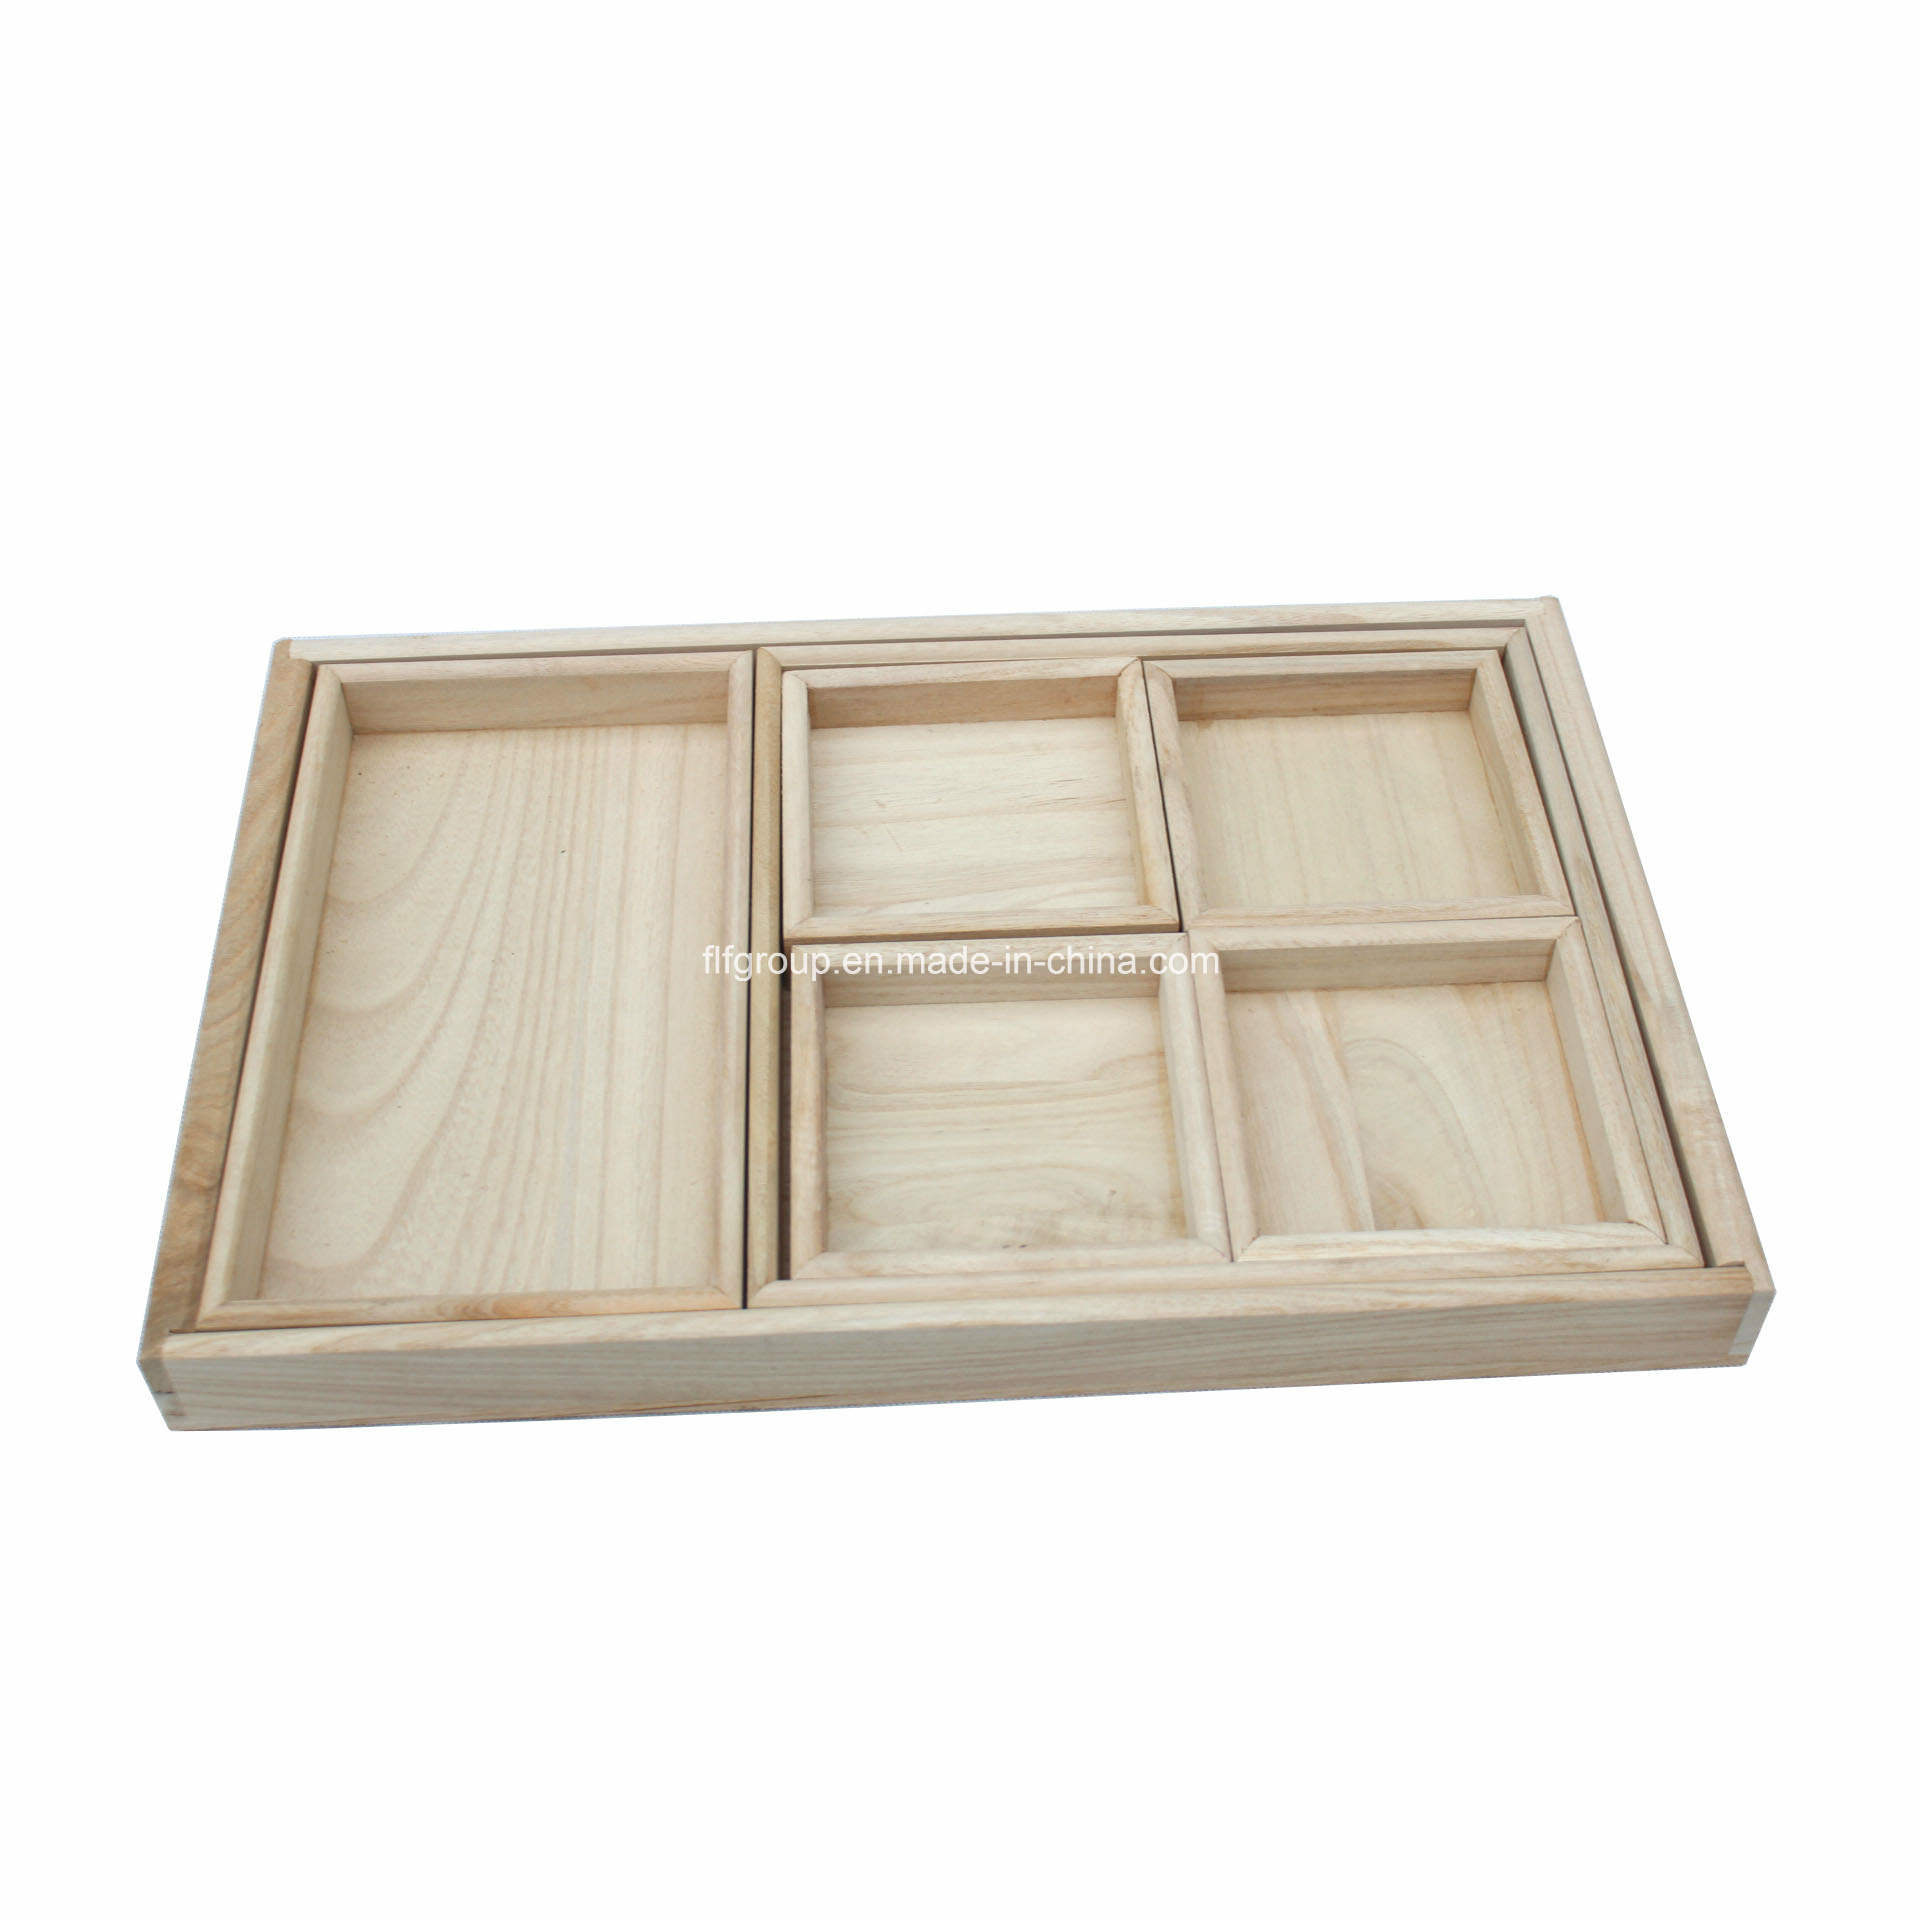 Eco-Friendly Customized Gift Box Wooden Box for Display